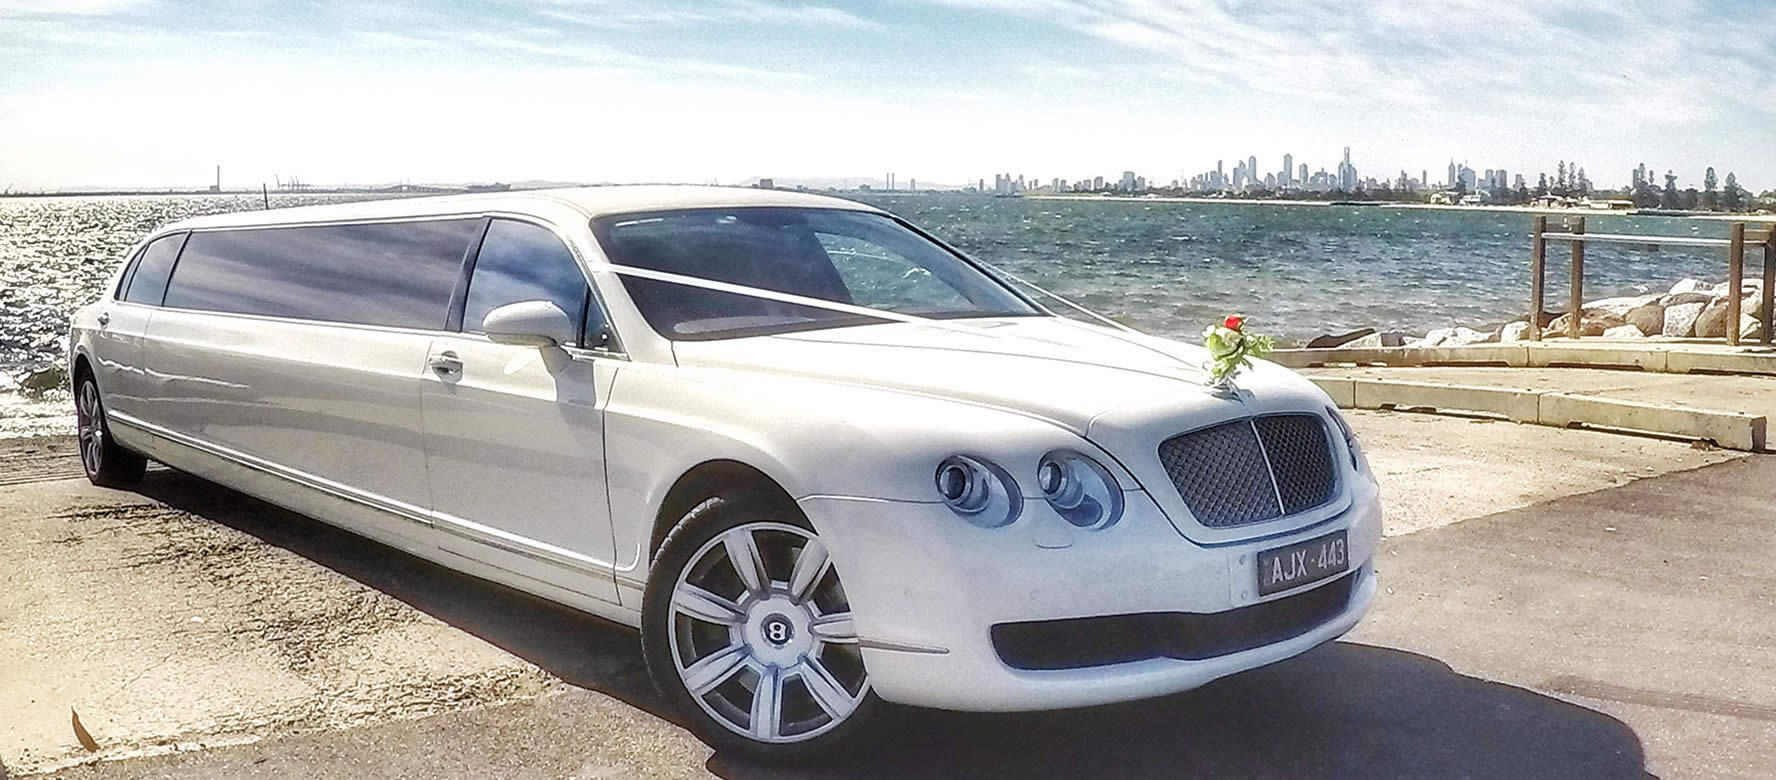 White Bentley Limo Hire Melbourne